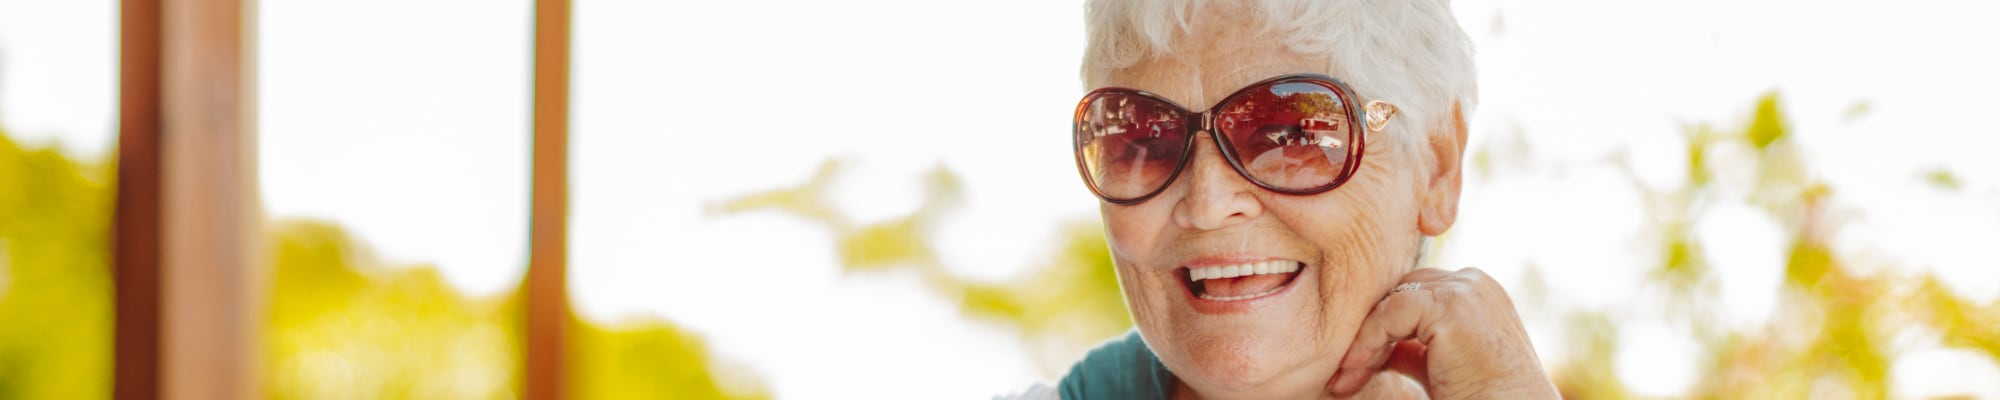 Reviews of Grand Rapids, MI senior living